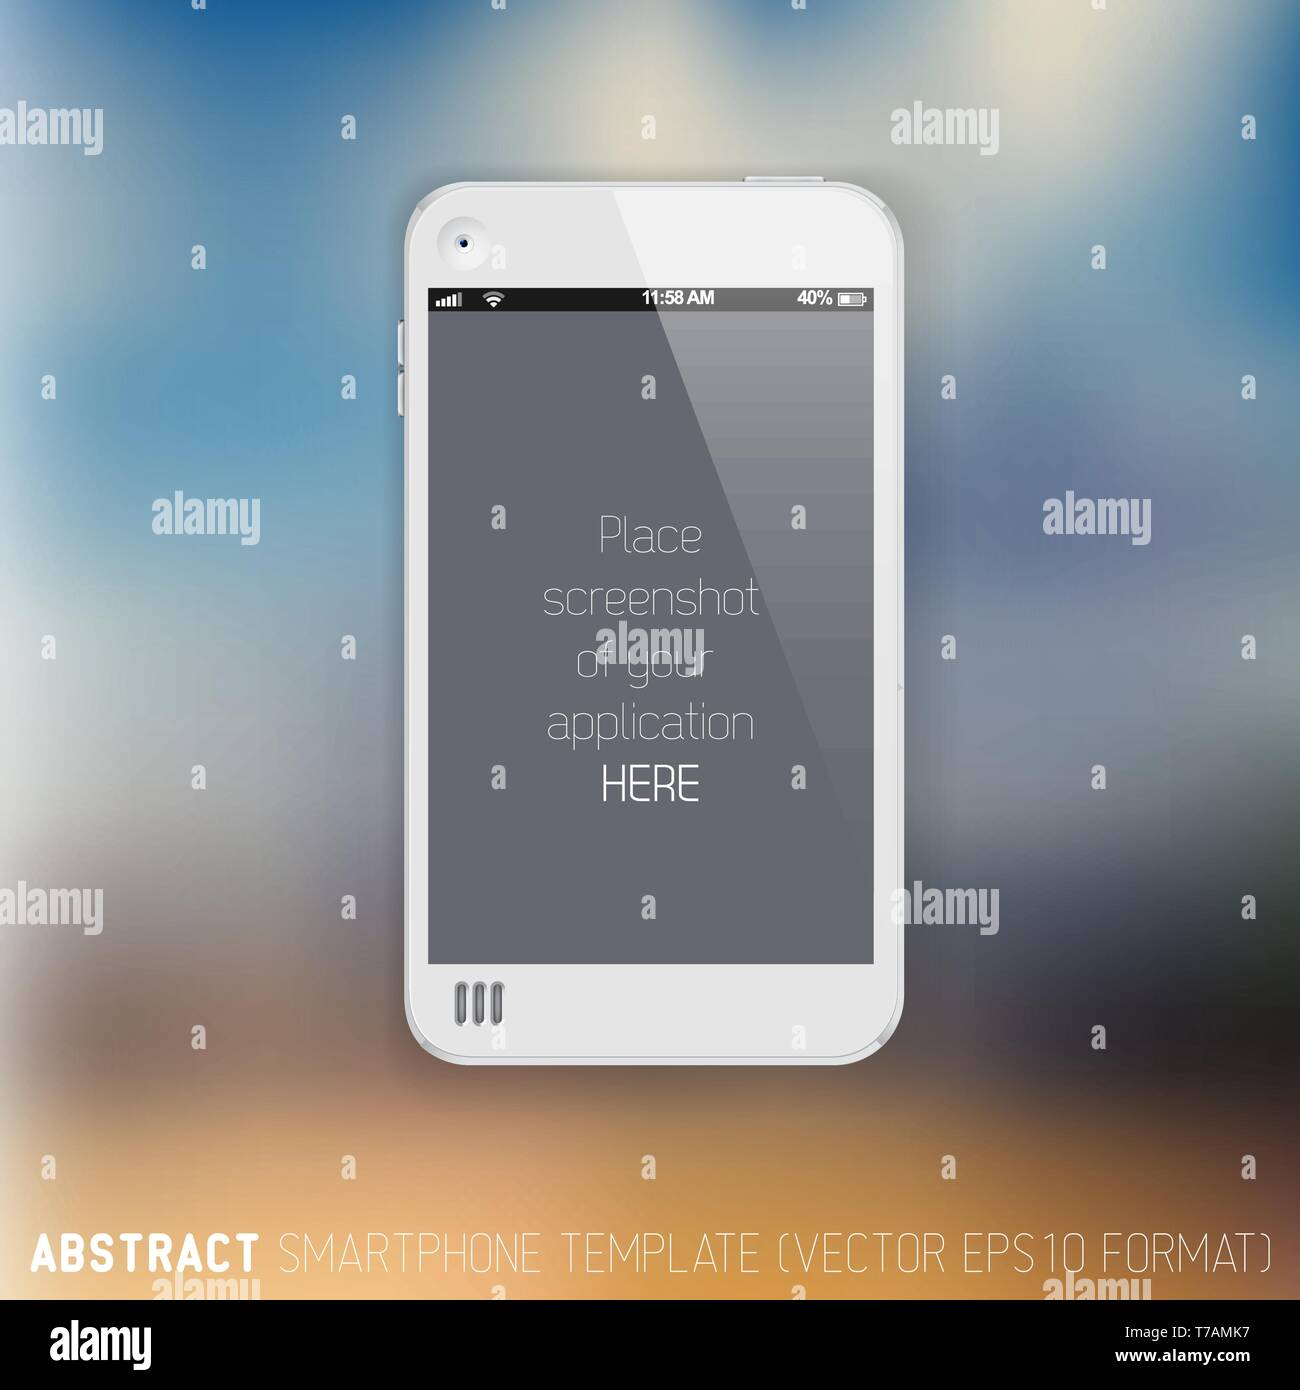 Abstract white mobile phone template with place for your application screenshot on a blurred background - Stock Image